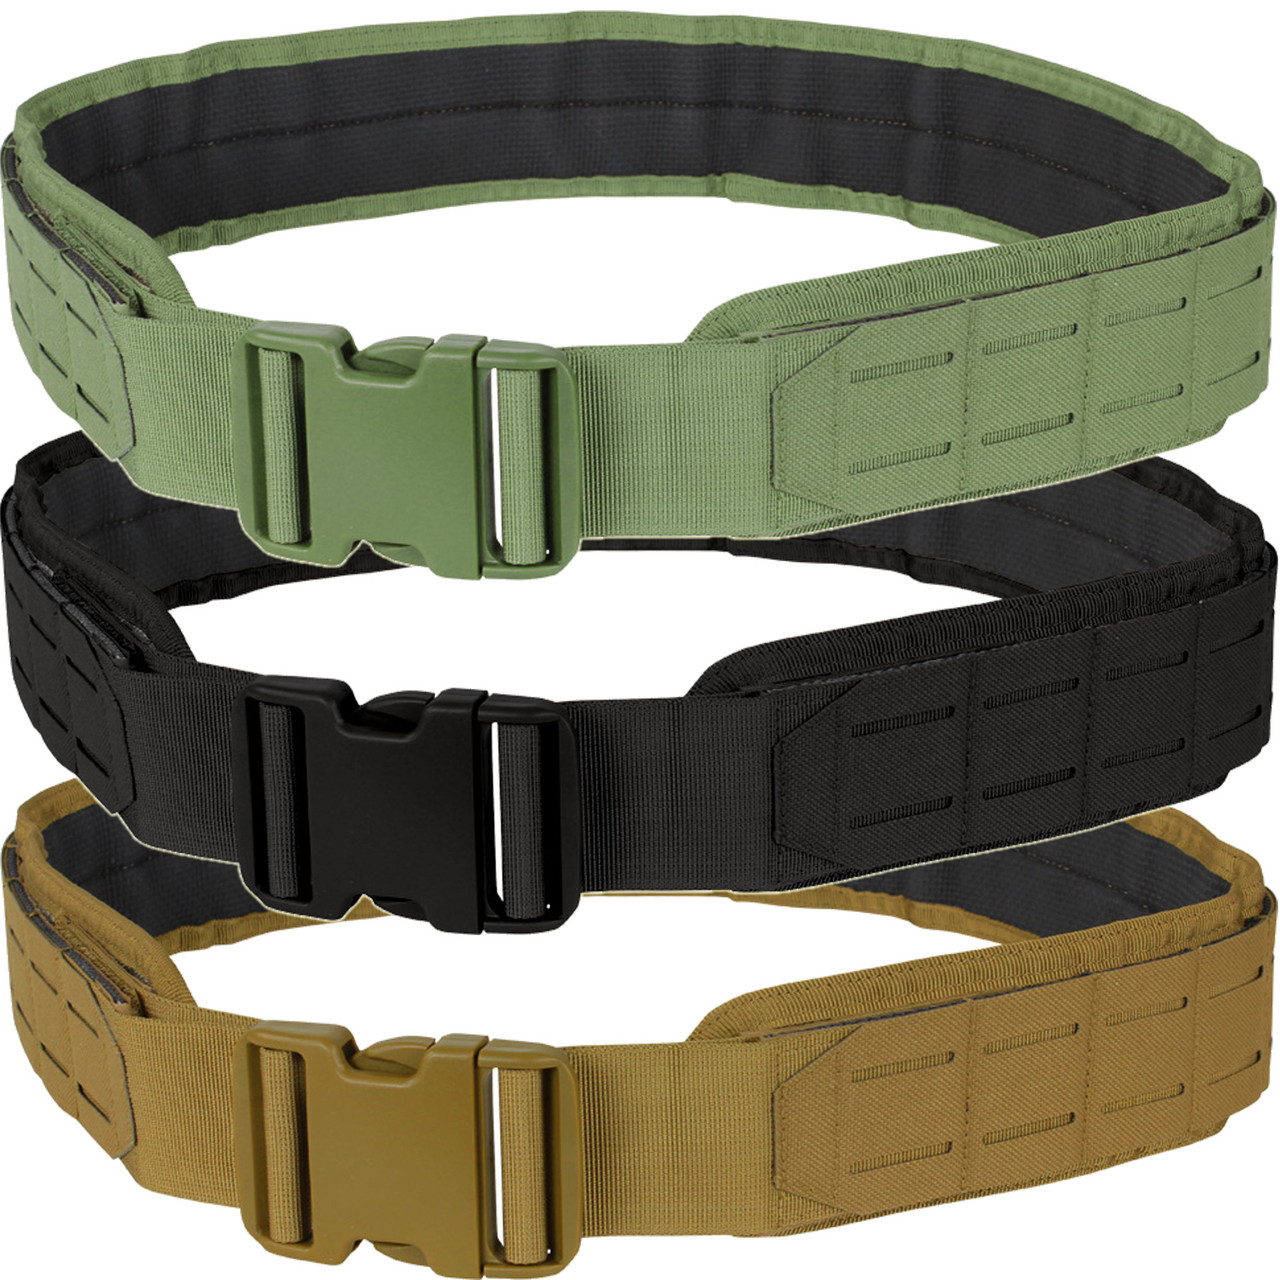 Condor Modular LCS VAS MOLLE Tactical Belt Military Style Army Black